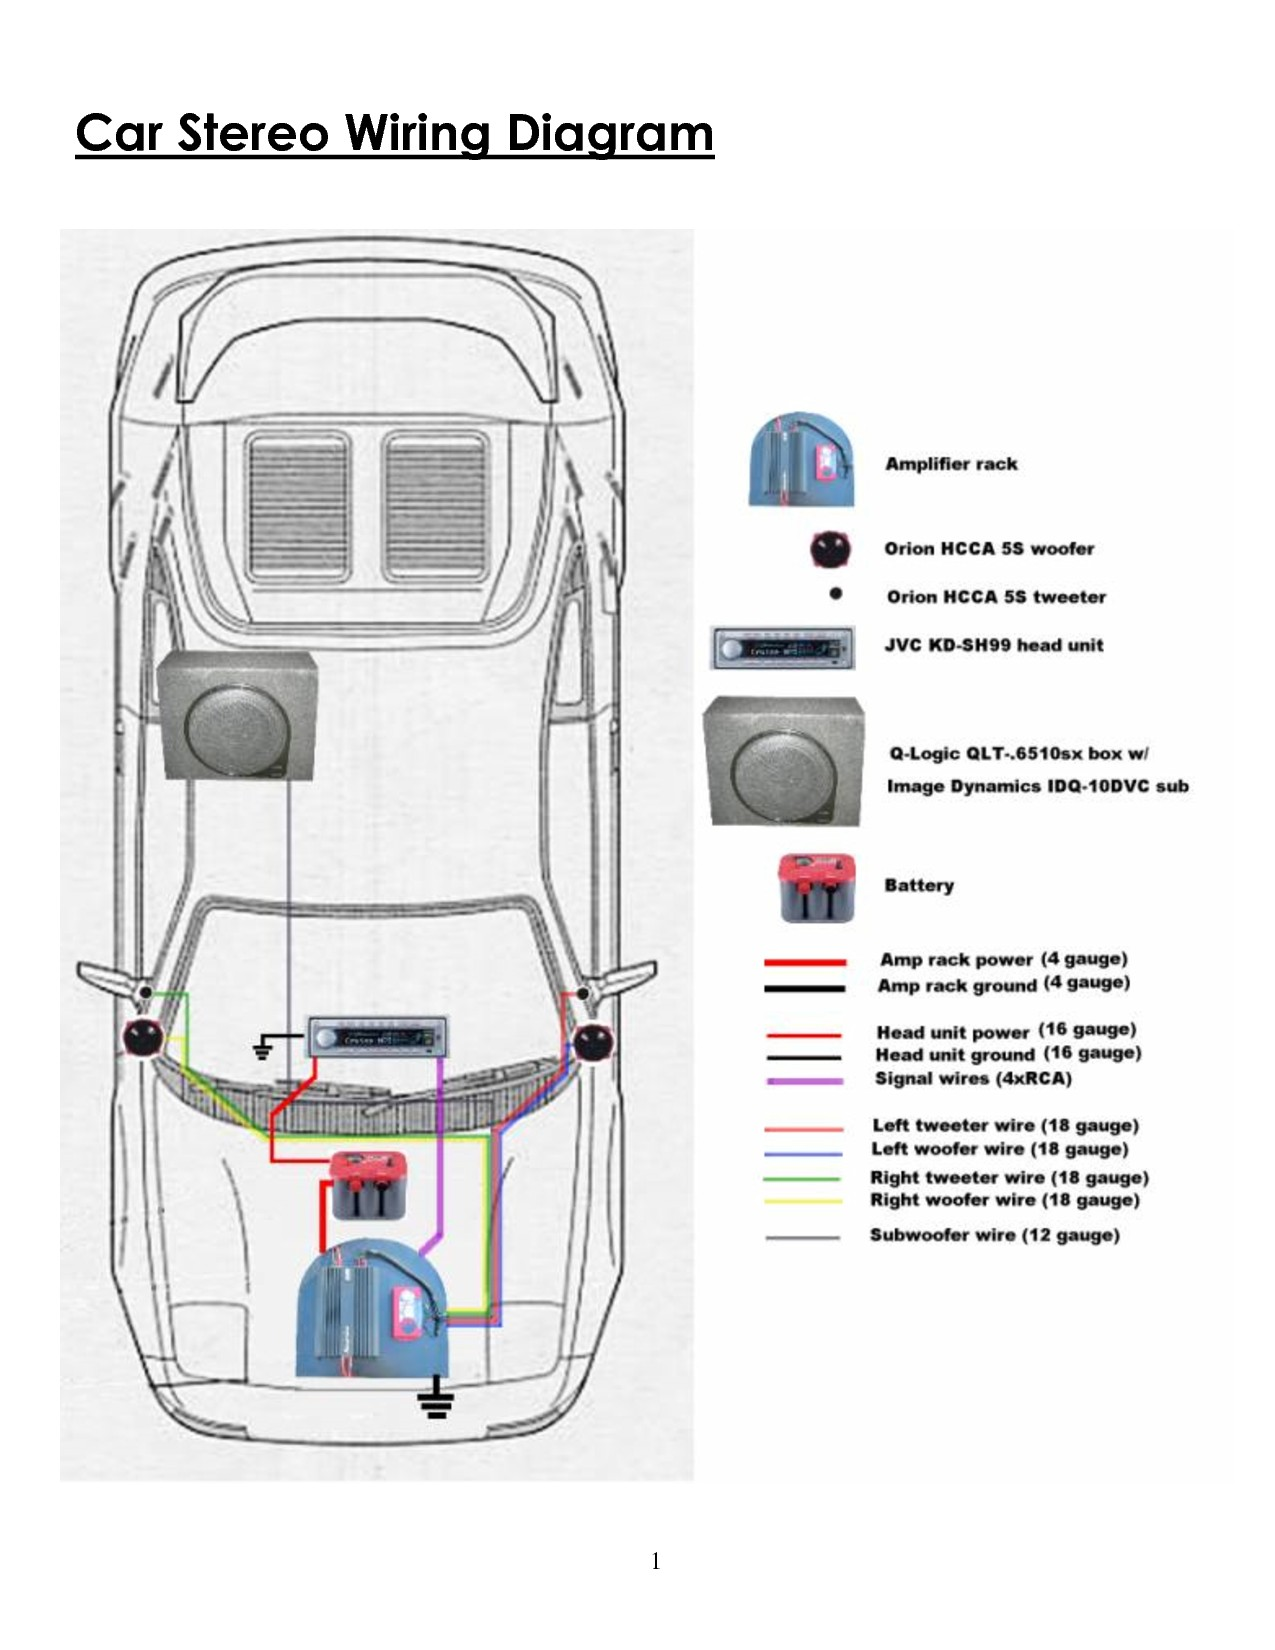 Car Stereo System Diagram Radio Cables Chevy Wiring Kit Audio Pioneer Colors Nissan Harness Of